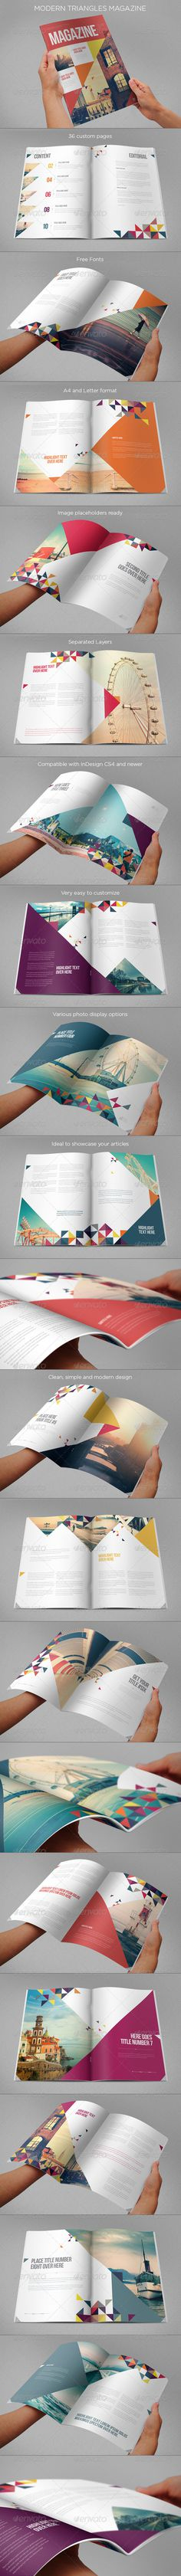 Modern Triangles Magazine - Magazines Print Templates